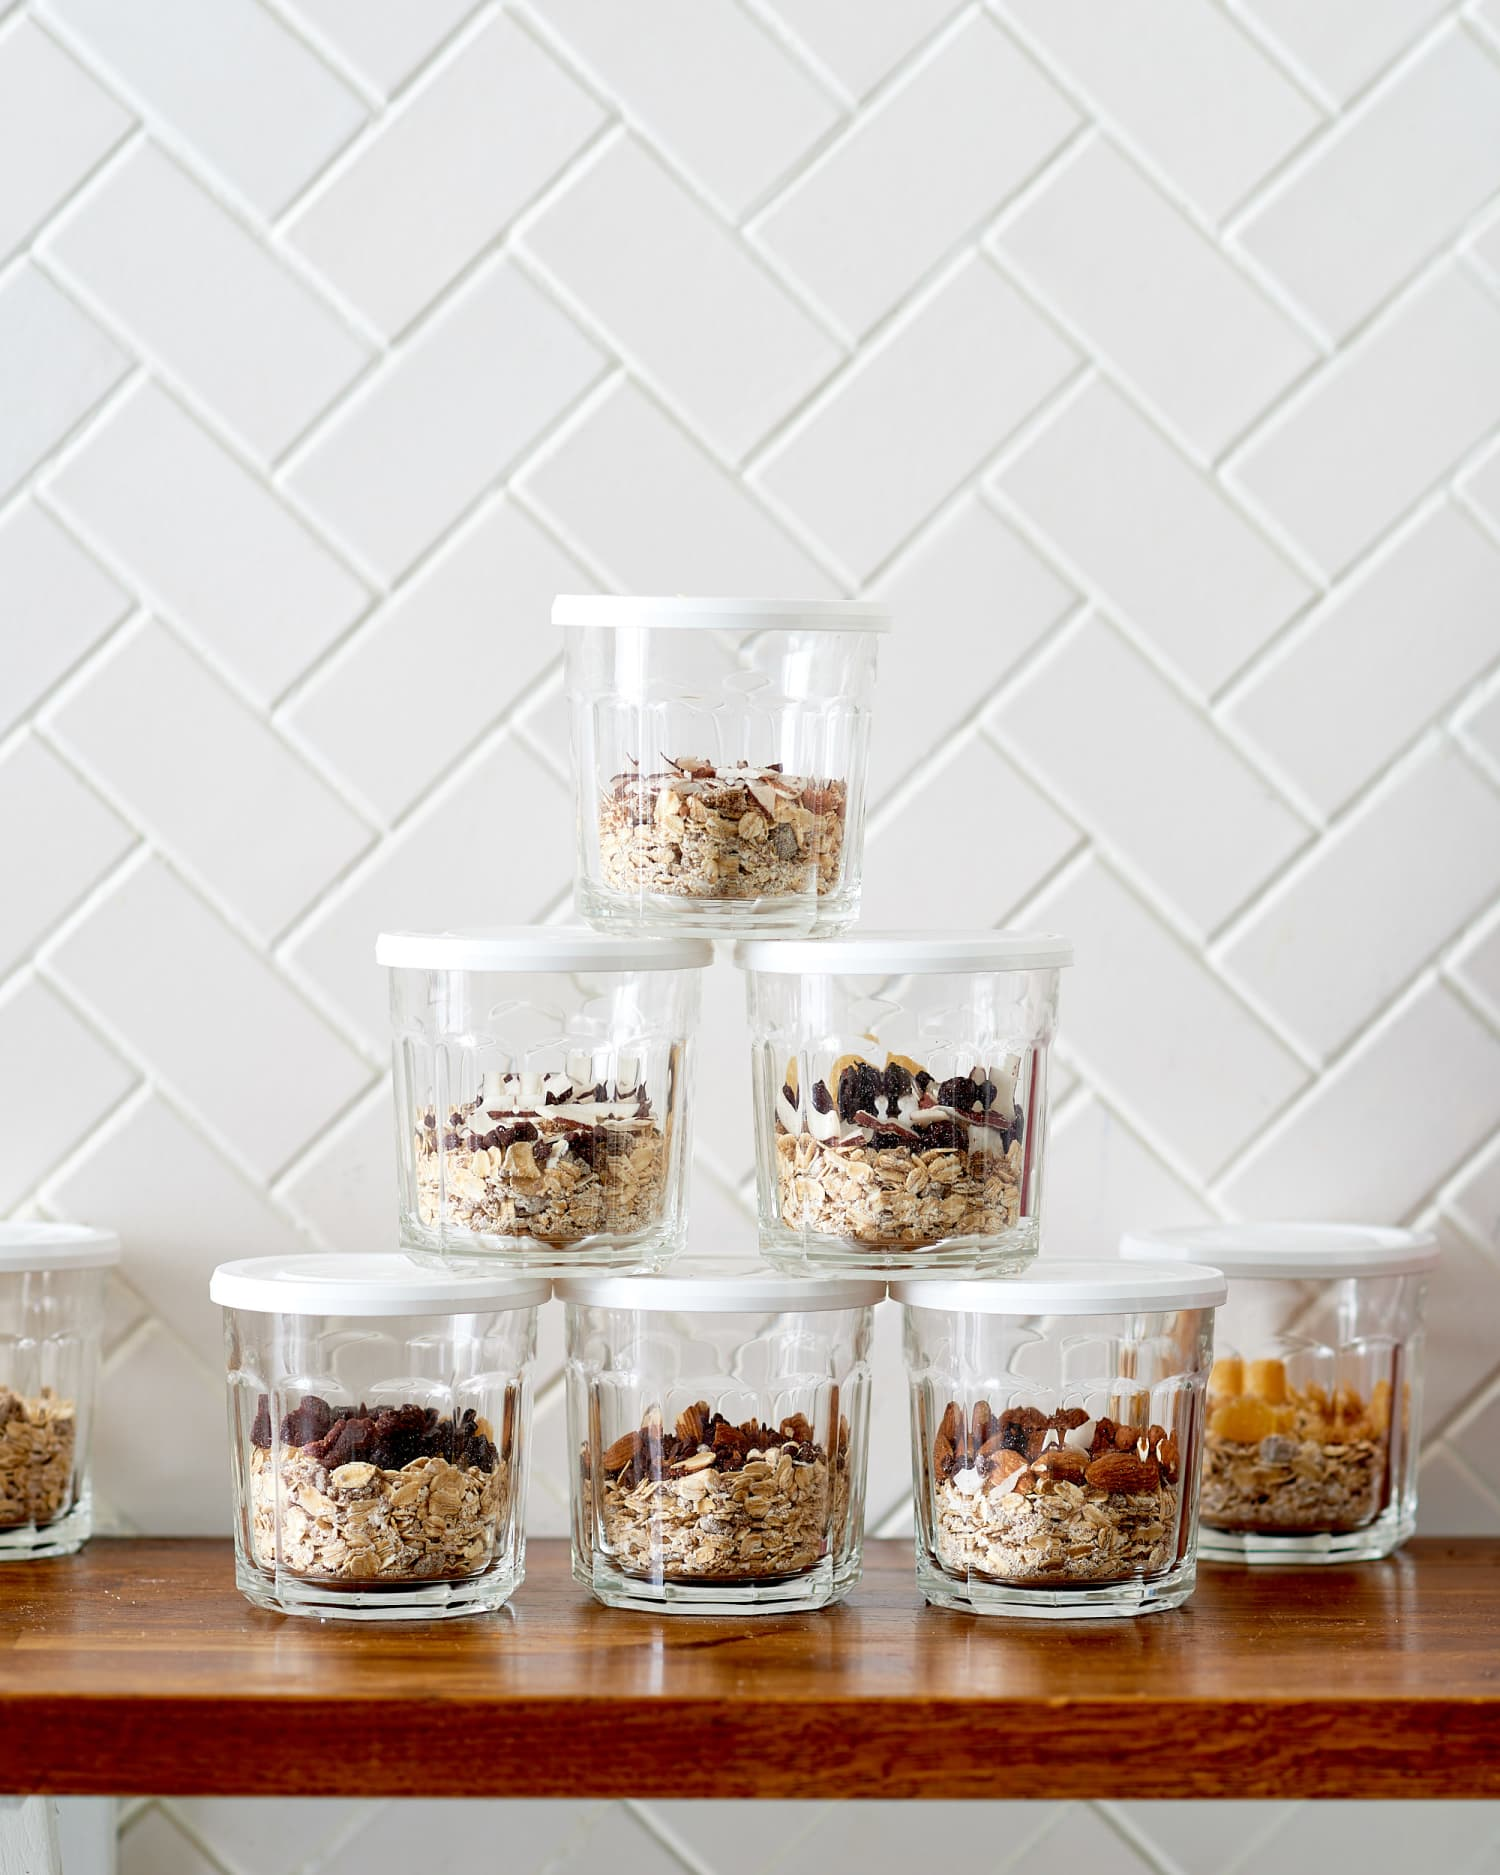 12 Ways to Prep Oats for a Week of Breakfast